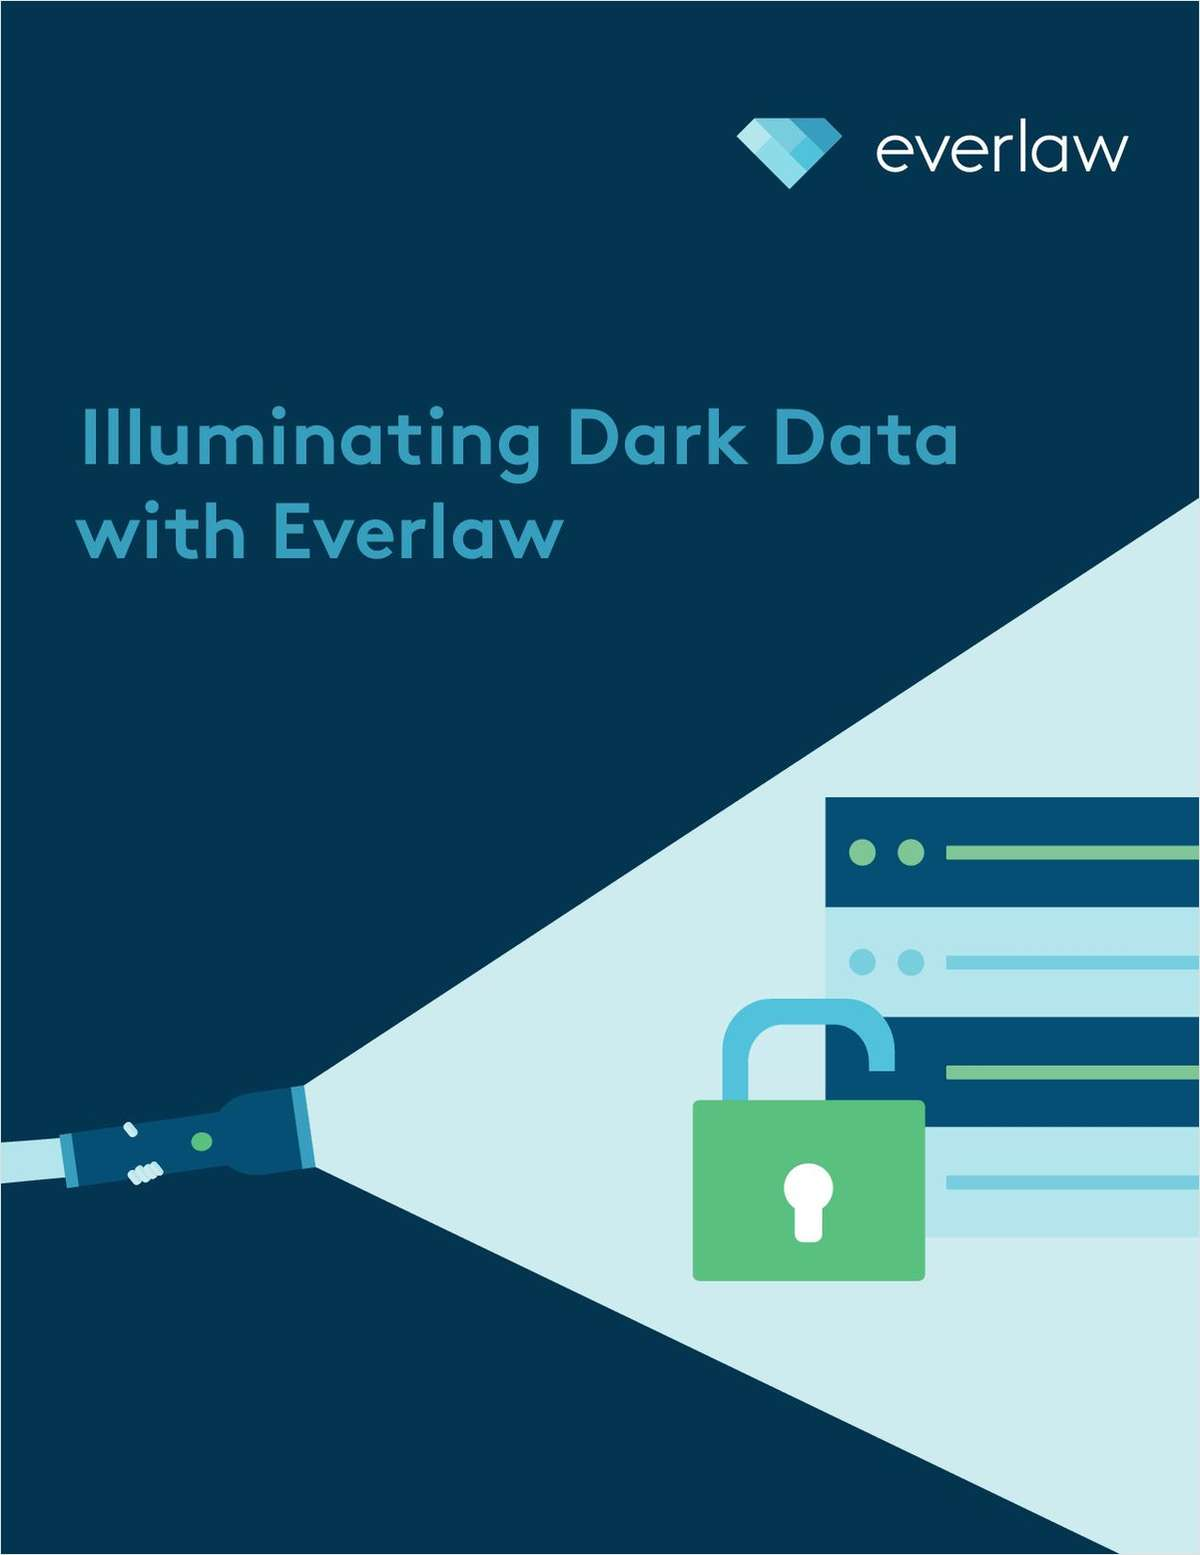 How to Illuminate Dark Data For Litigation or Investigation